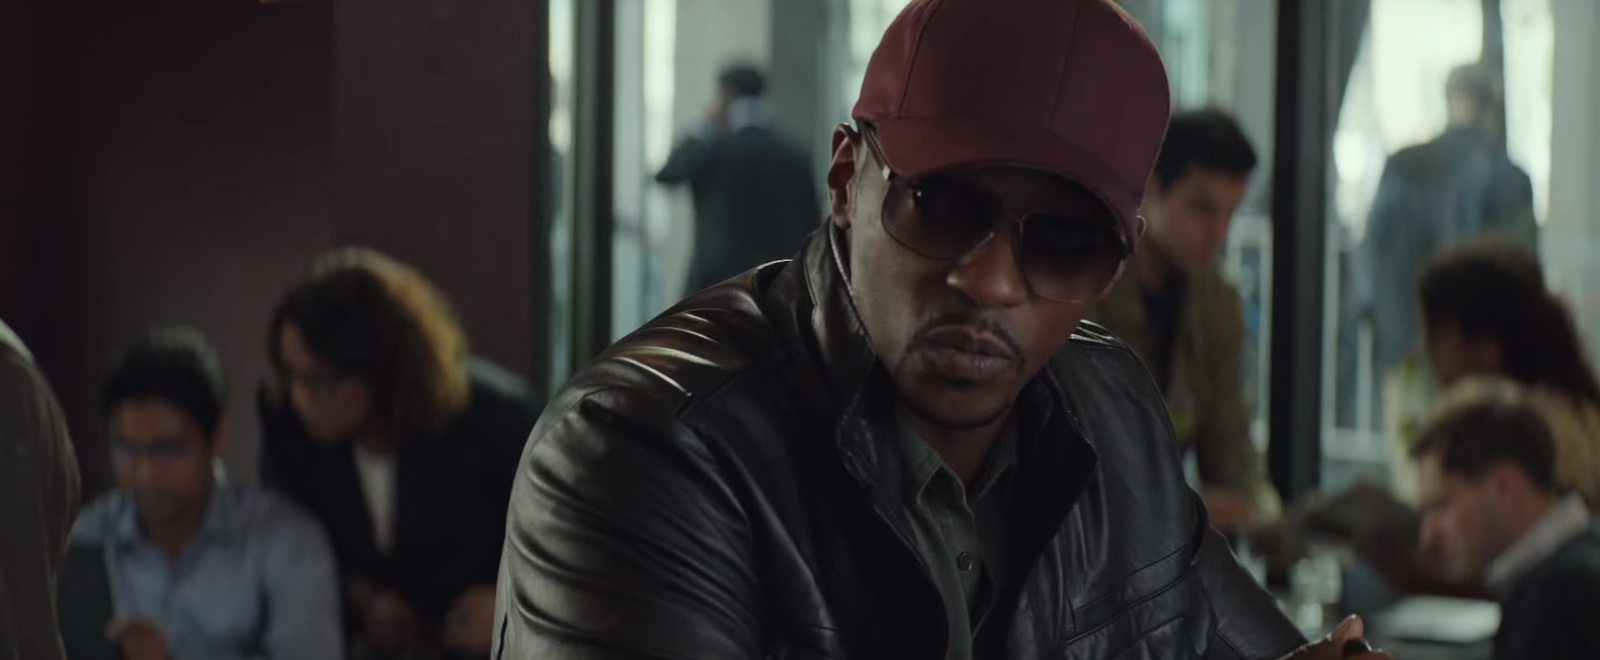 Bordeaux rode cap Anthony Mackie in Captain America: Civil War (2016)